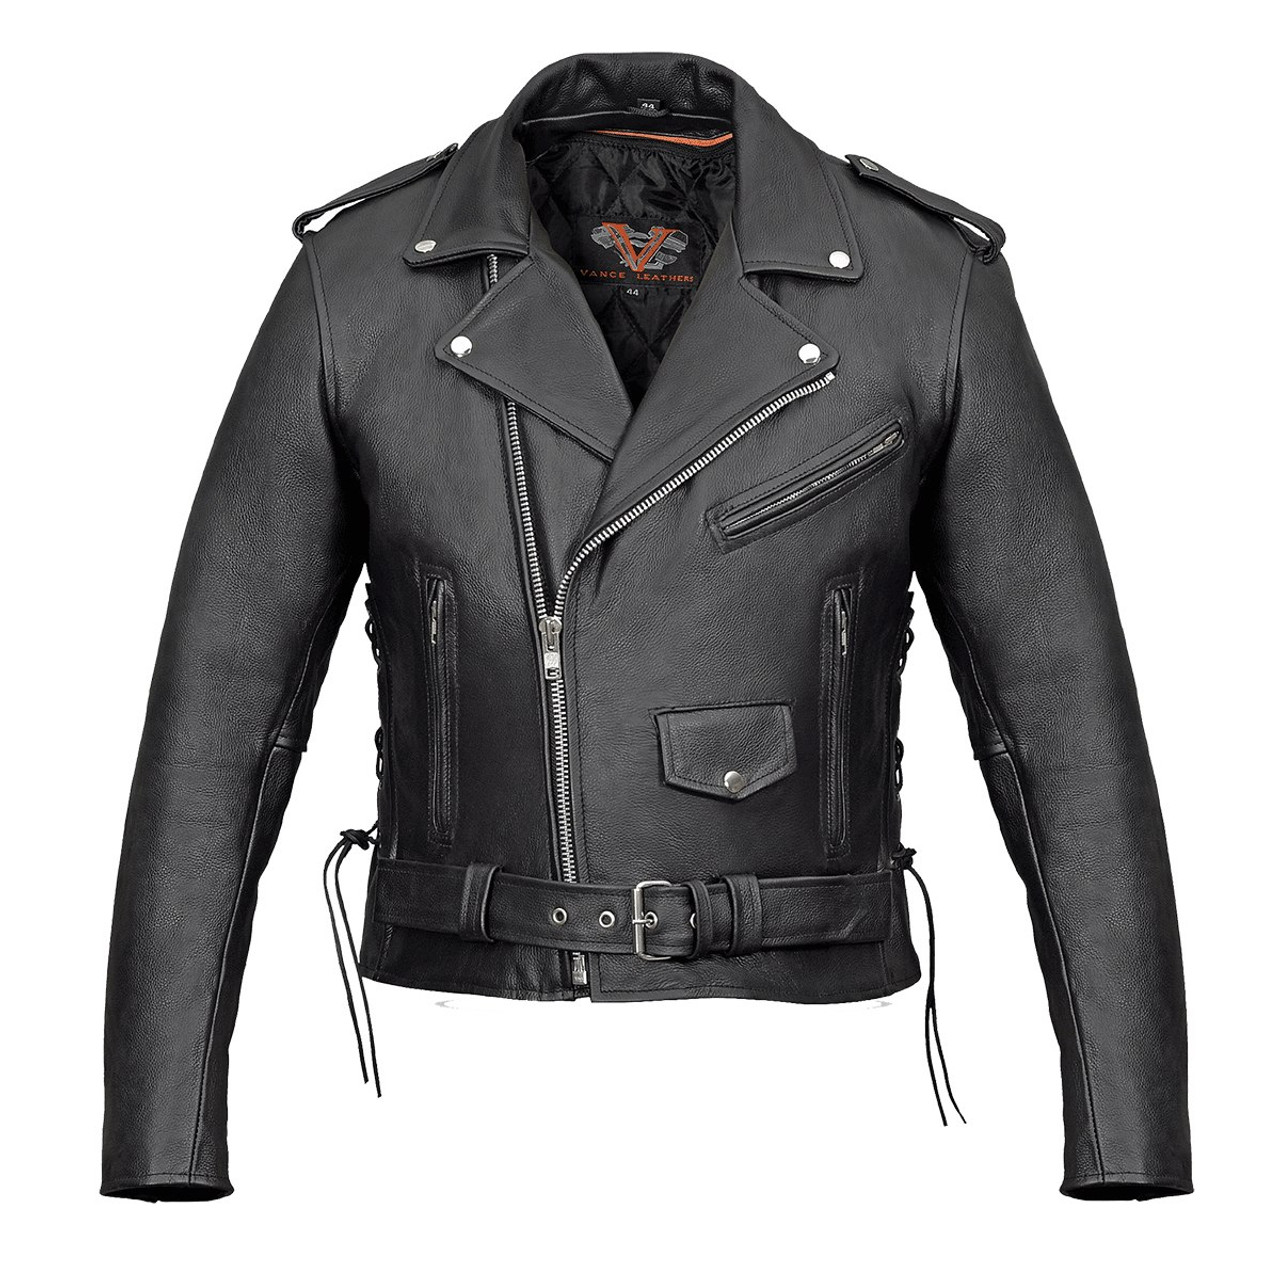 eec8df67ad9e Premium Leather Classic Motorcycle Jacket Lace Sides   Z O Liner ...